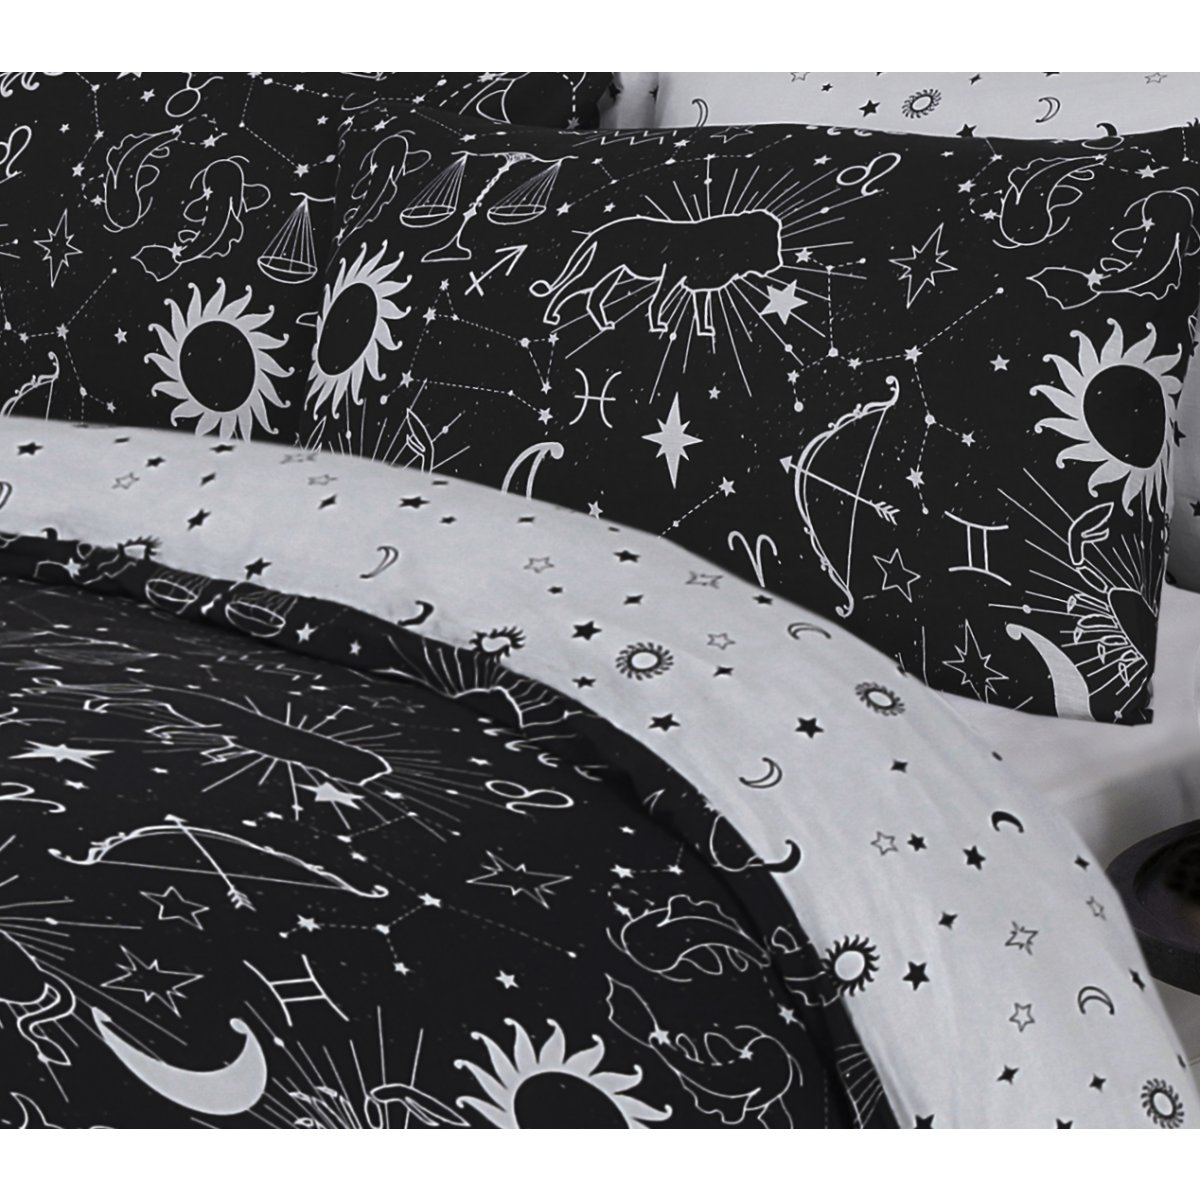 Star Gazing Black Bedding - Reversible Duvet Cover and Pillowcase Set